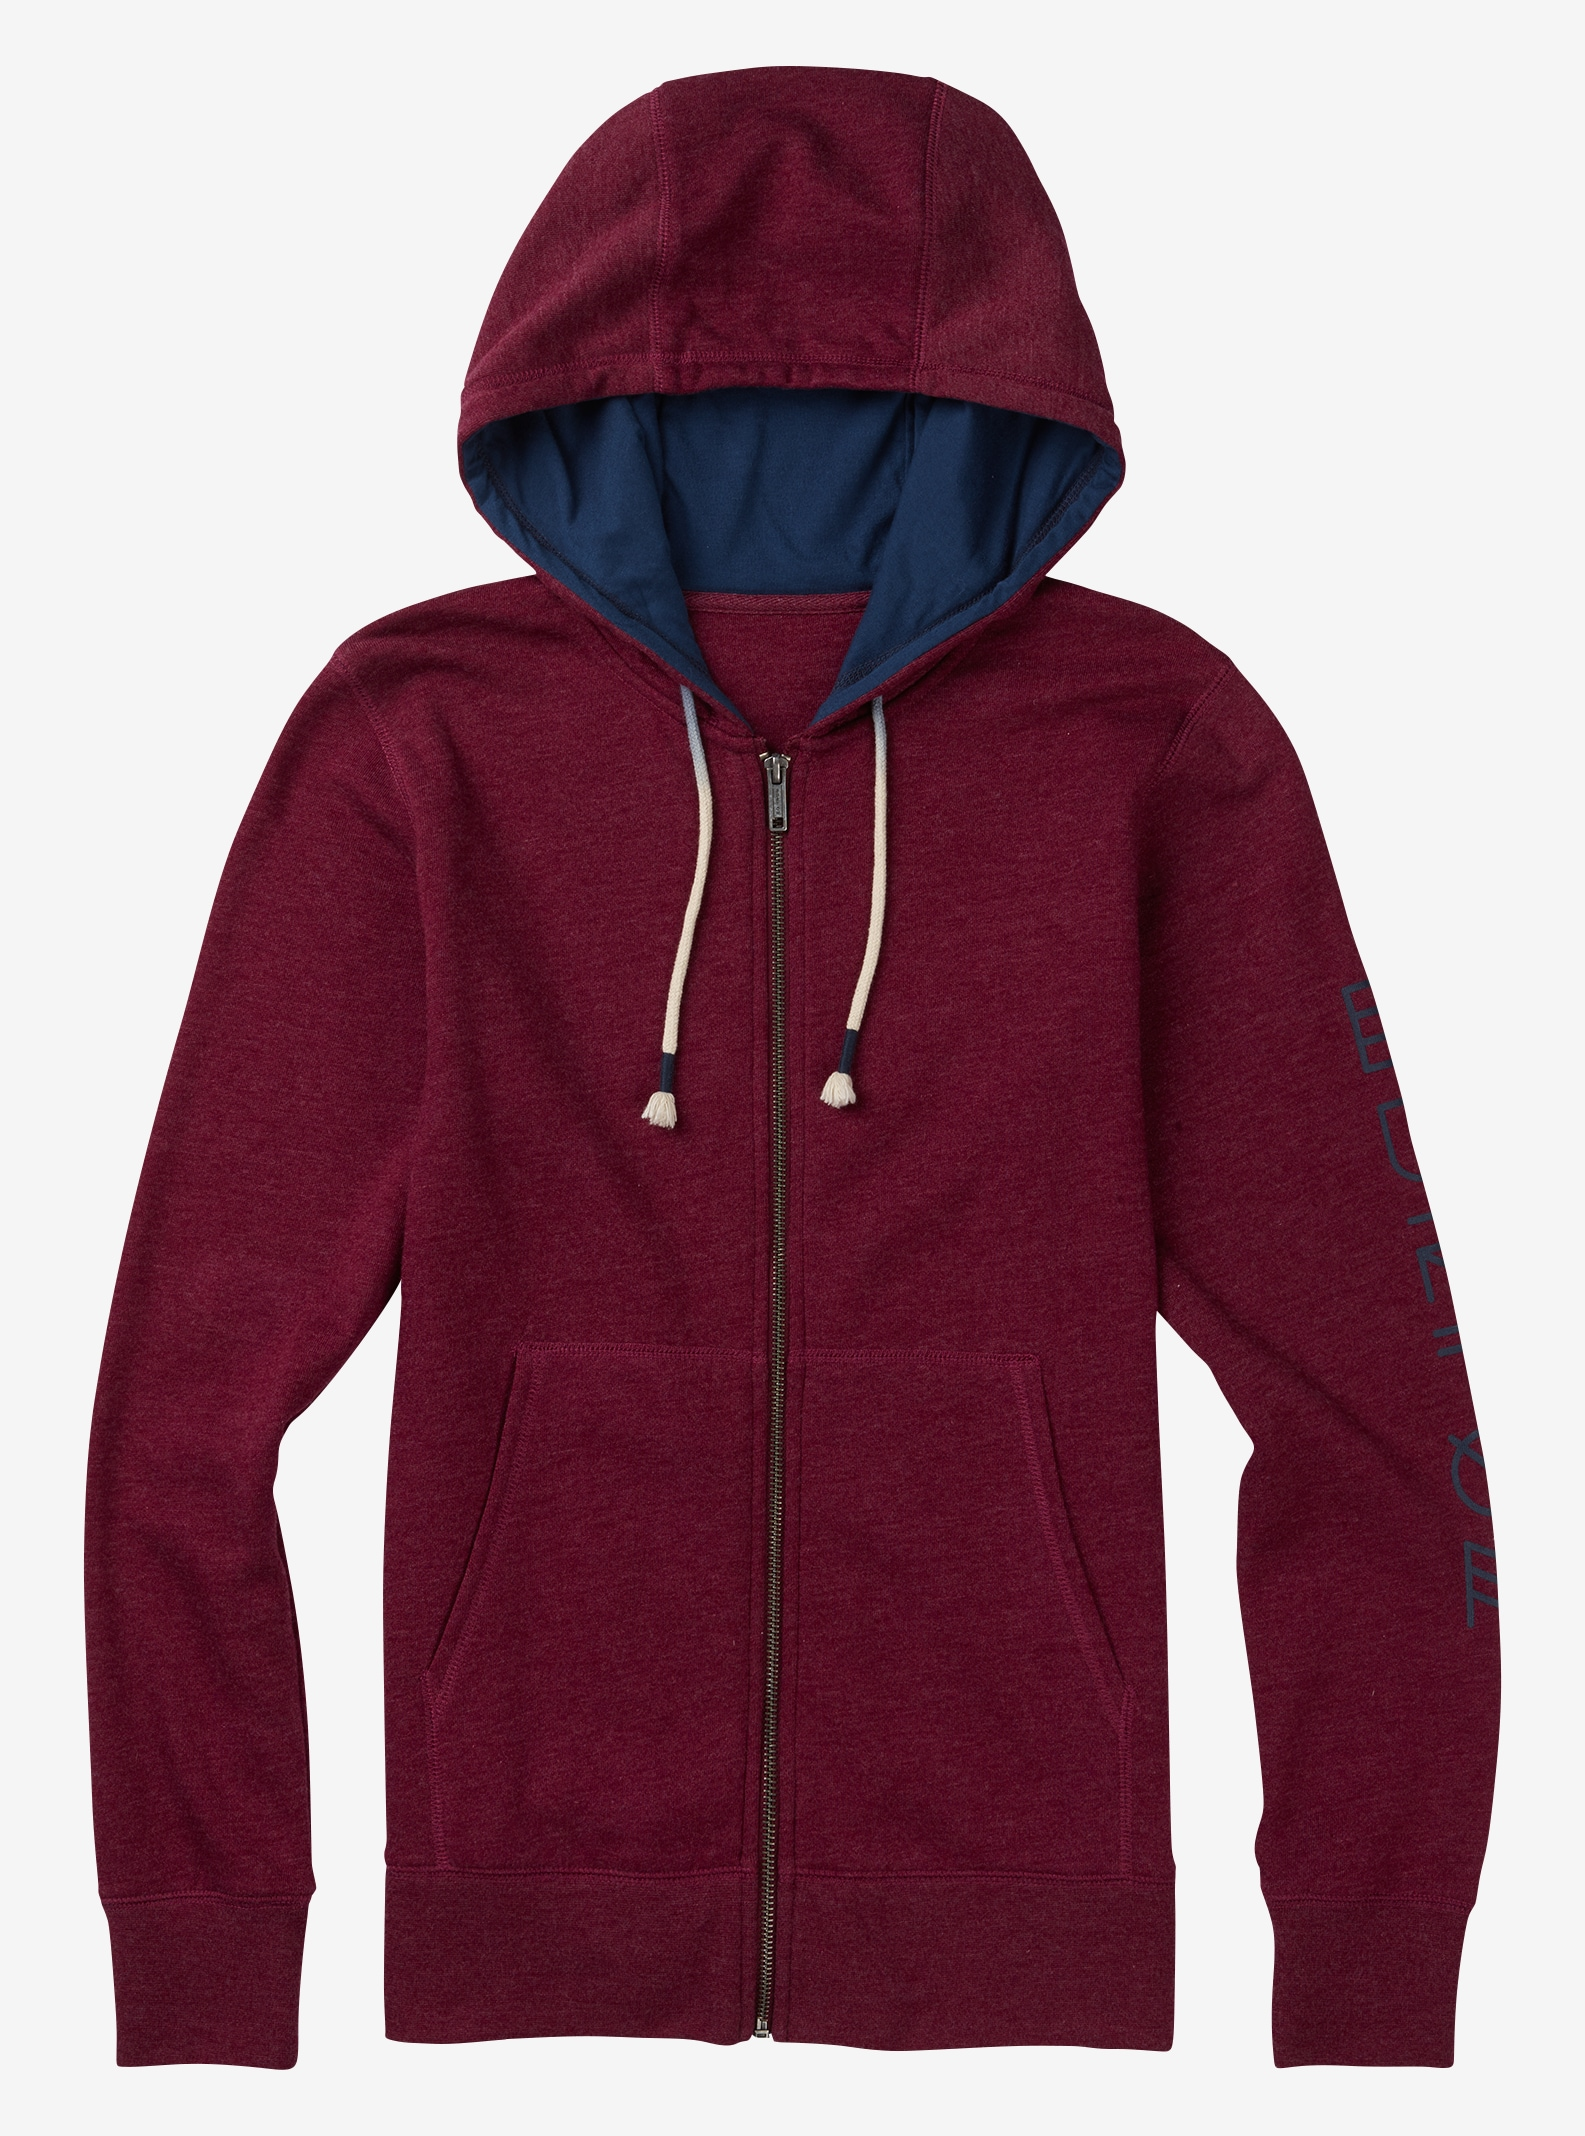 Women's Burton Infinity Full-Zip Hoodie shown in Sangria